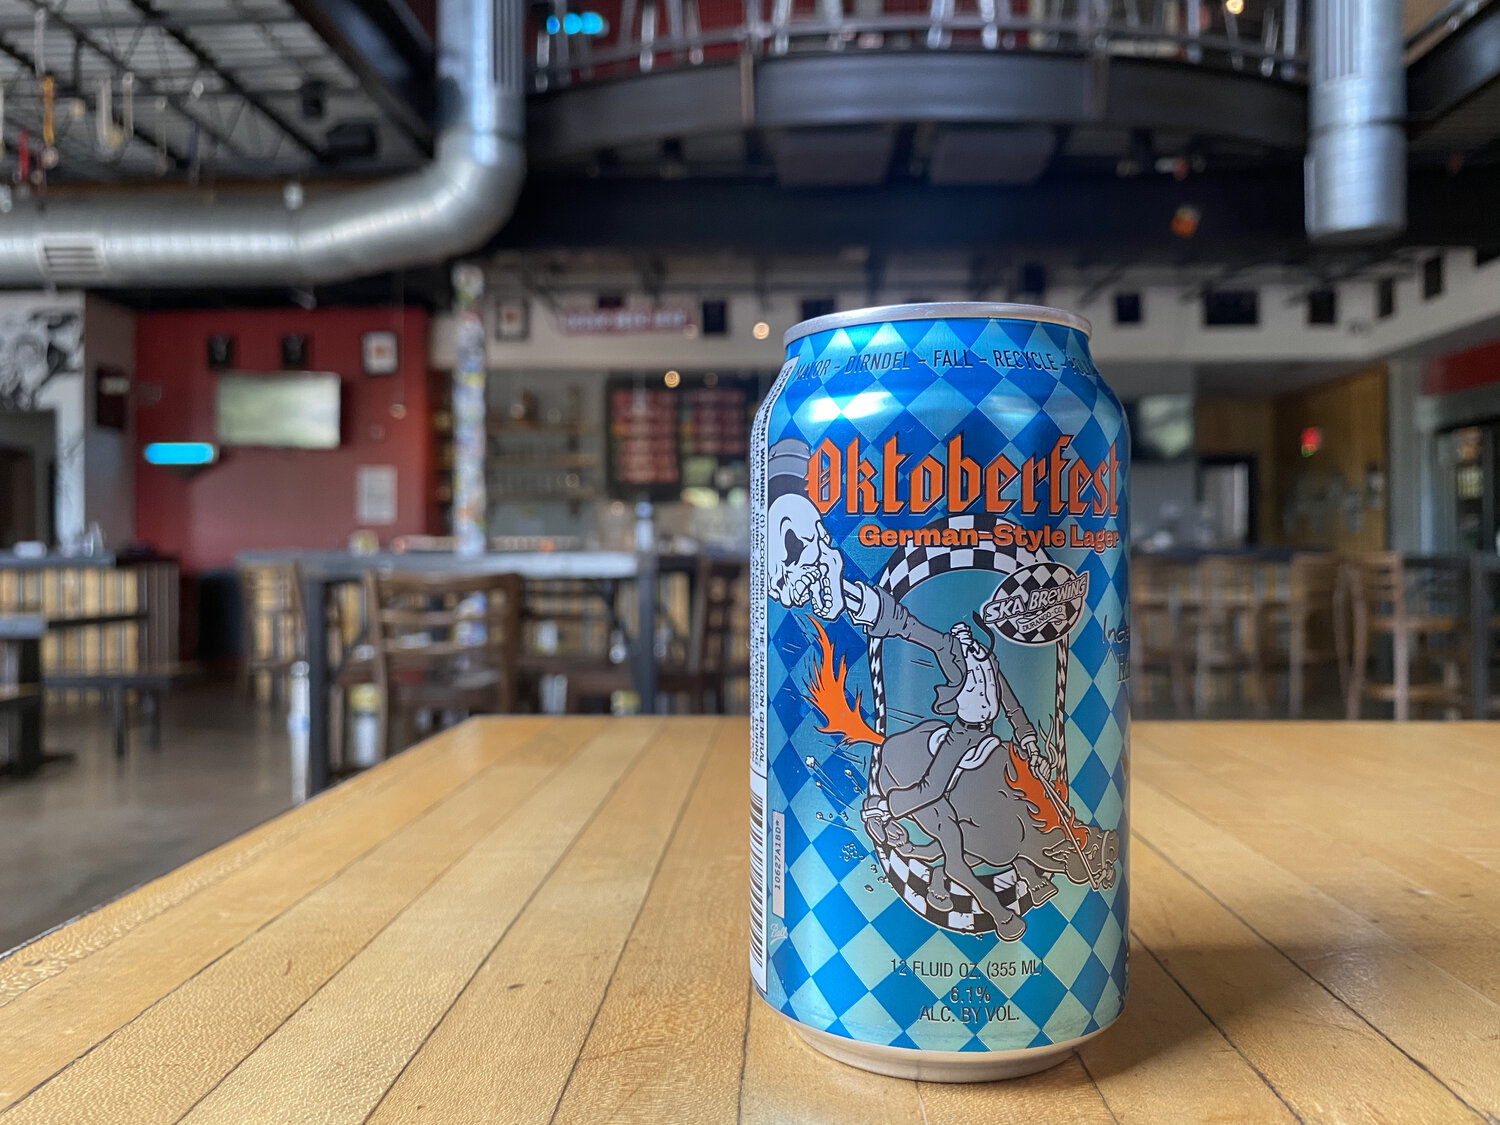 Munich's Oktoberfest Is Cancelled Again, Ska Brewing German-Style Lager Returns Nonetheless